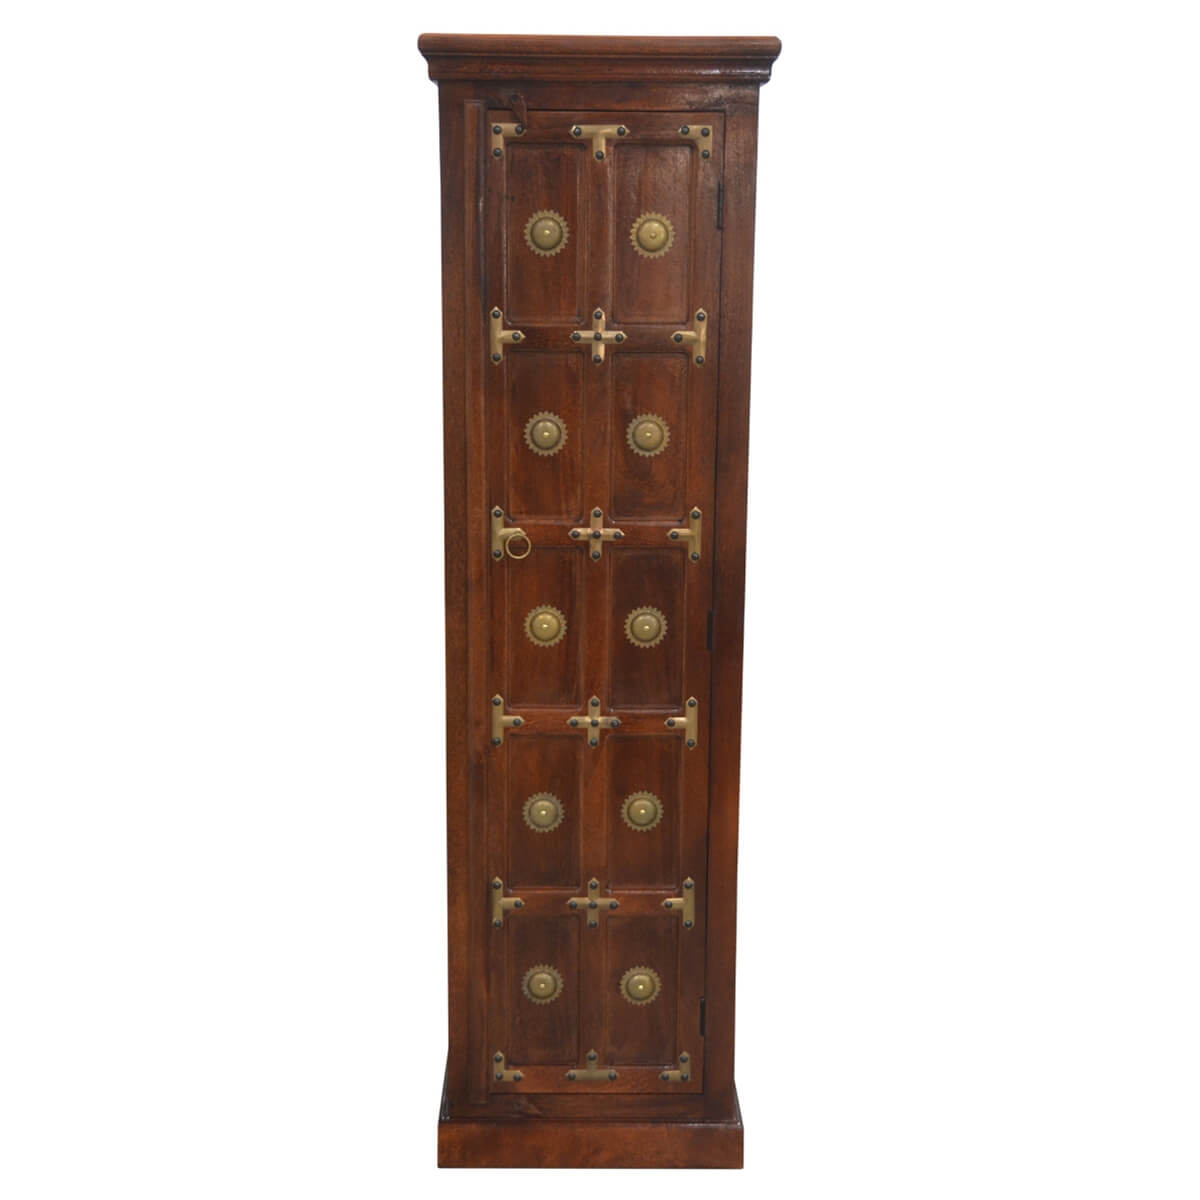 Antique heritage brass accents wood storage cabinet new